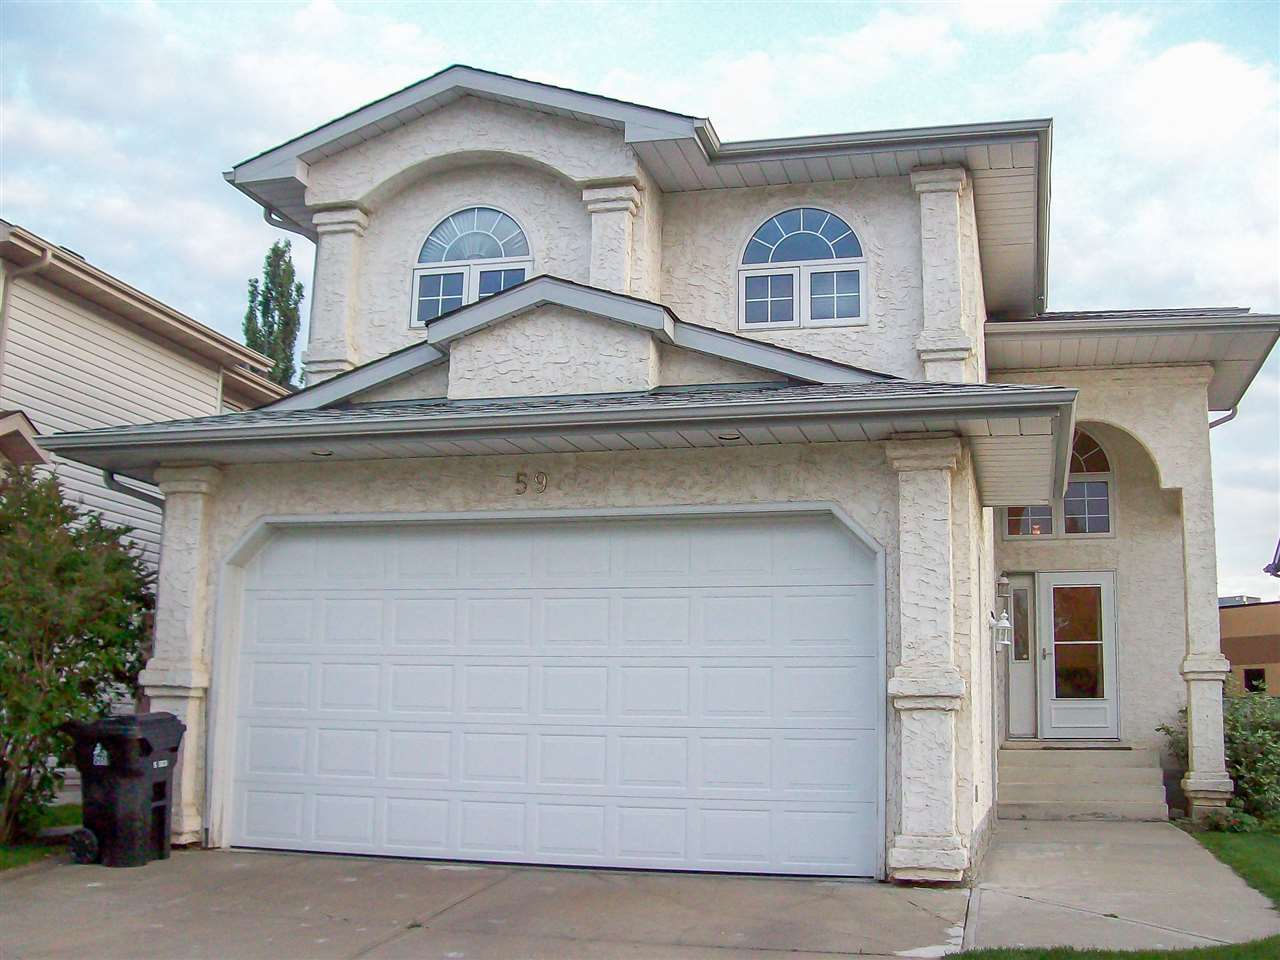 MLS® listing #E4172965 for sale located at 59 Deer Park Boulevard